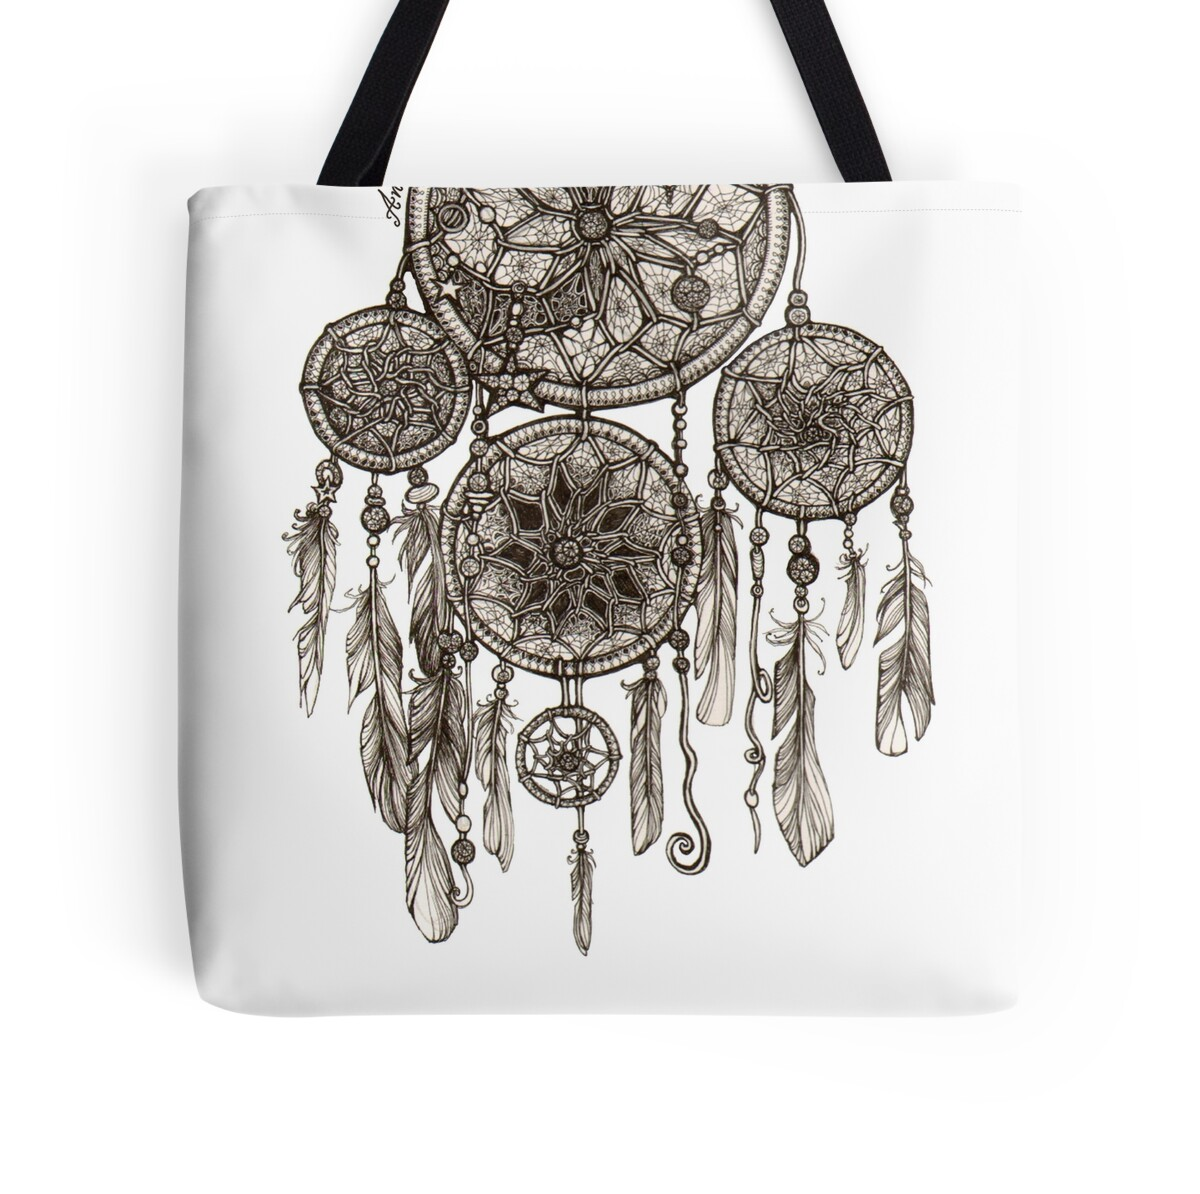 Tote bag drawing - Dreamcatcher By Anna Oparina